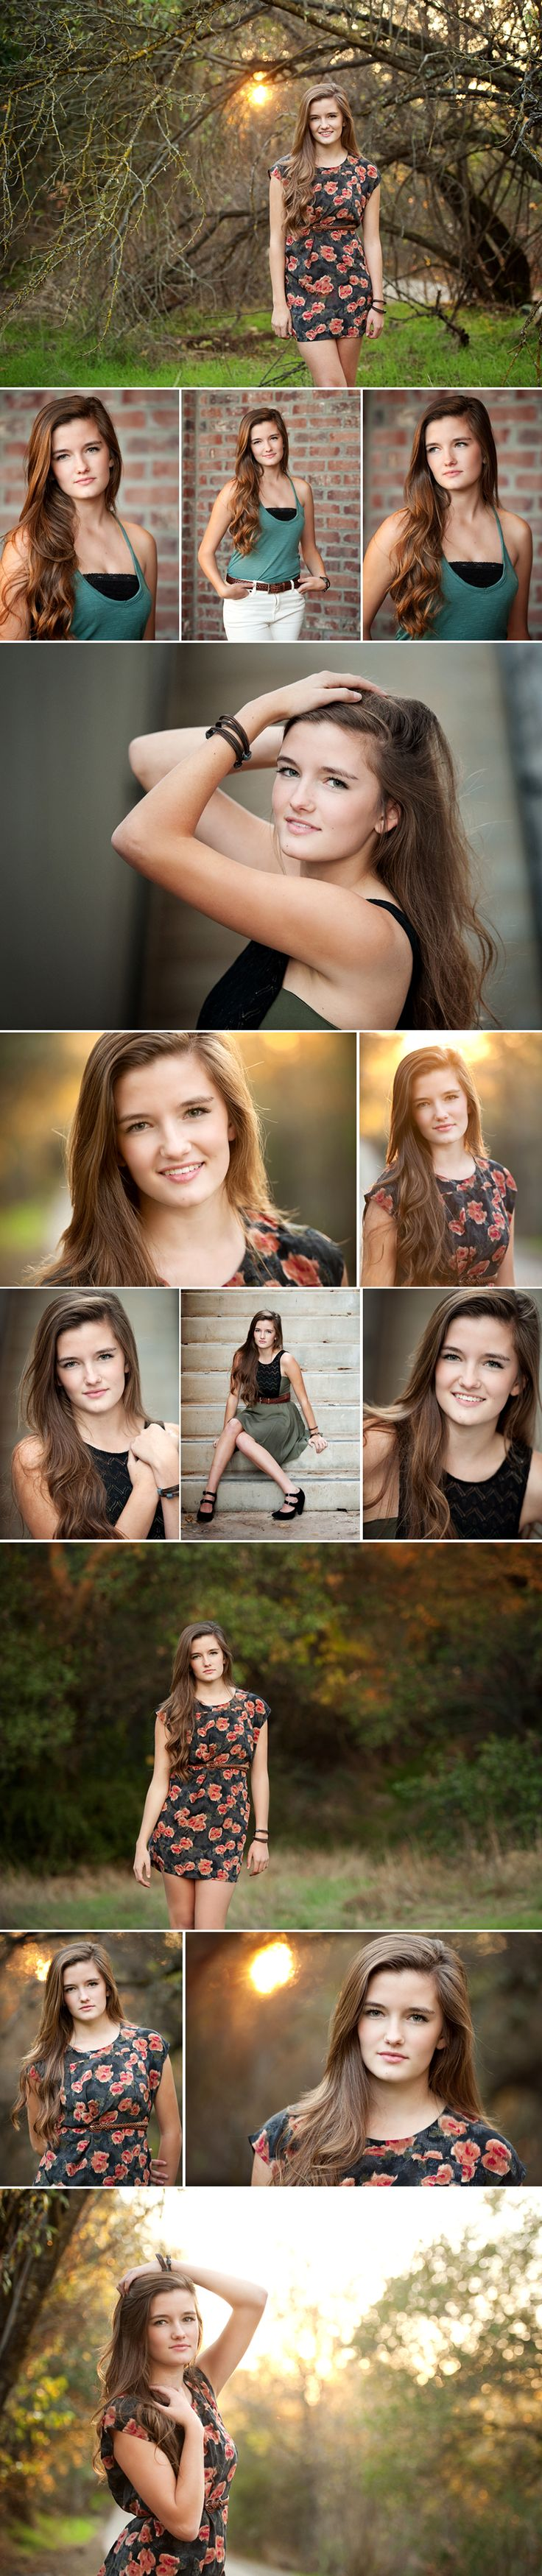 Hats off to Megan Squire - a wonderful compilation of poses leading to top notch Senior portraits.